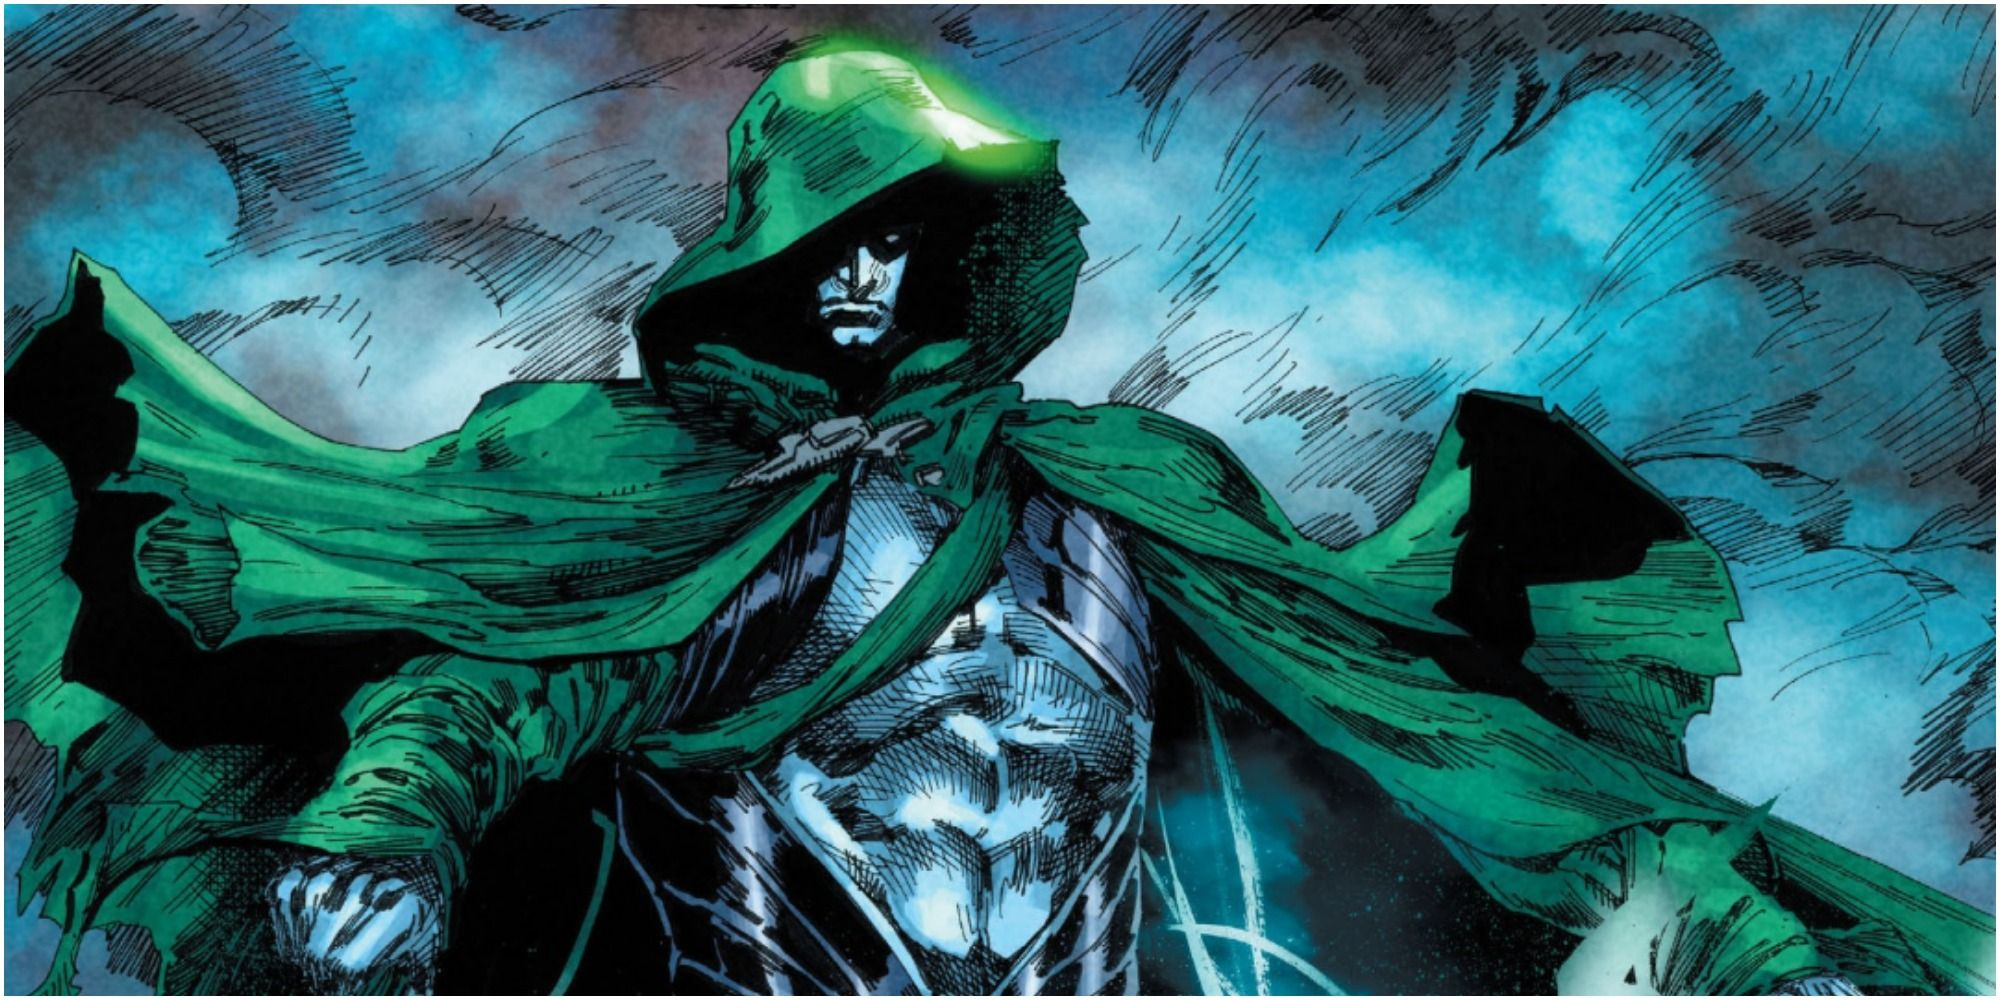 Crisis on Infinite Earths Casts the Spectre | CBR